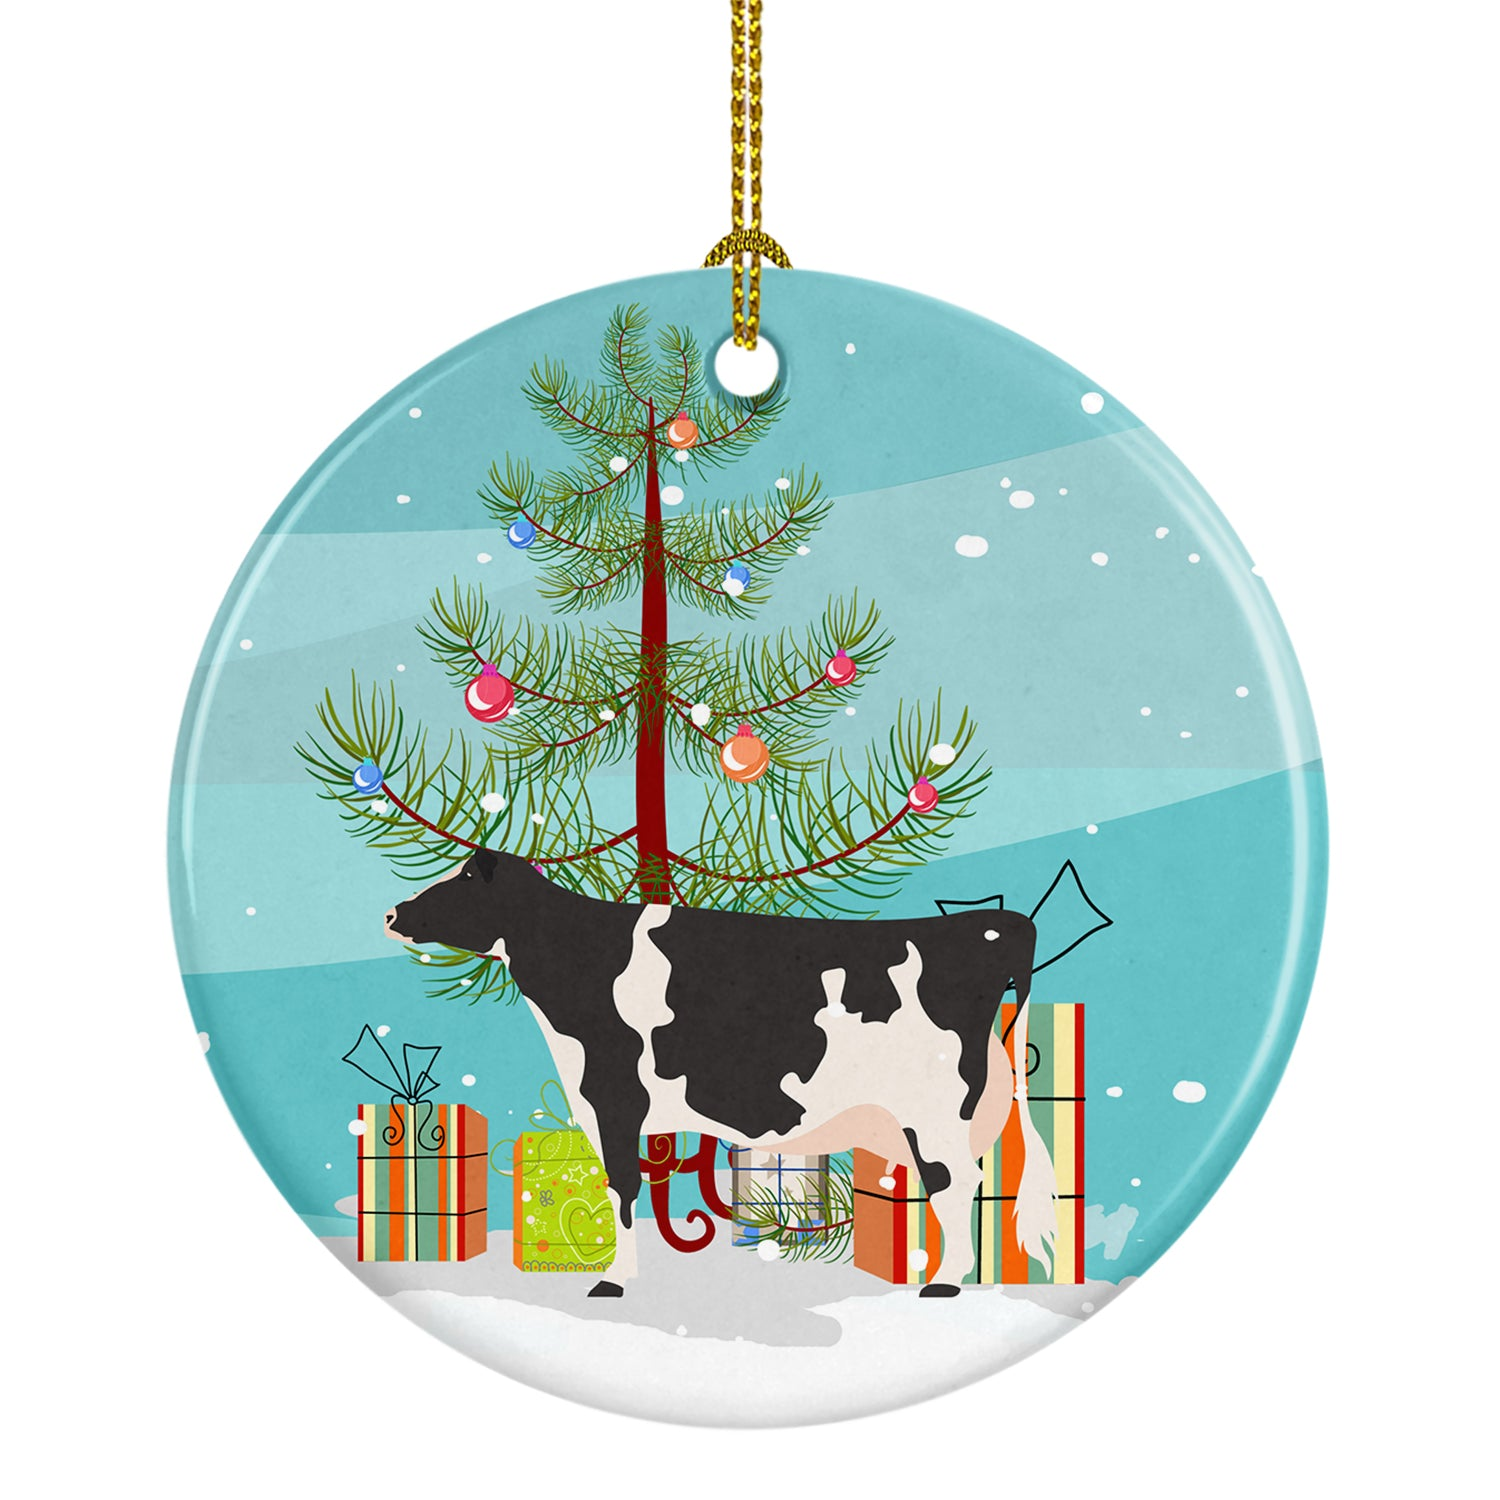 Holstein Cow Christmas Ceramic Ornament BB9189CO1 by Caroline's Treasures